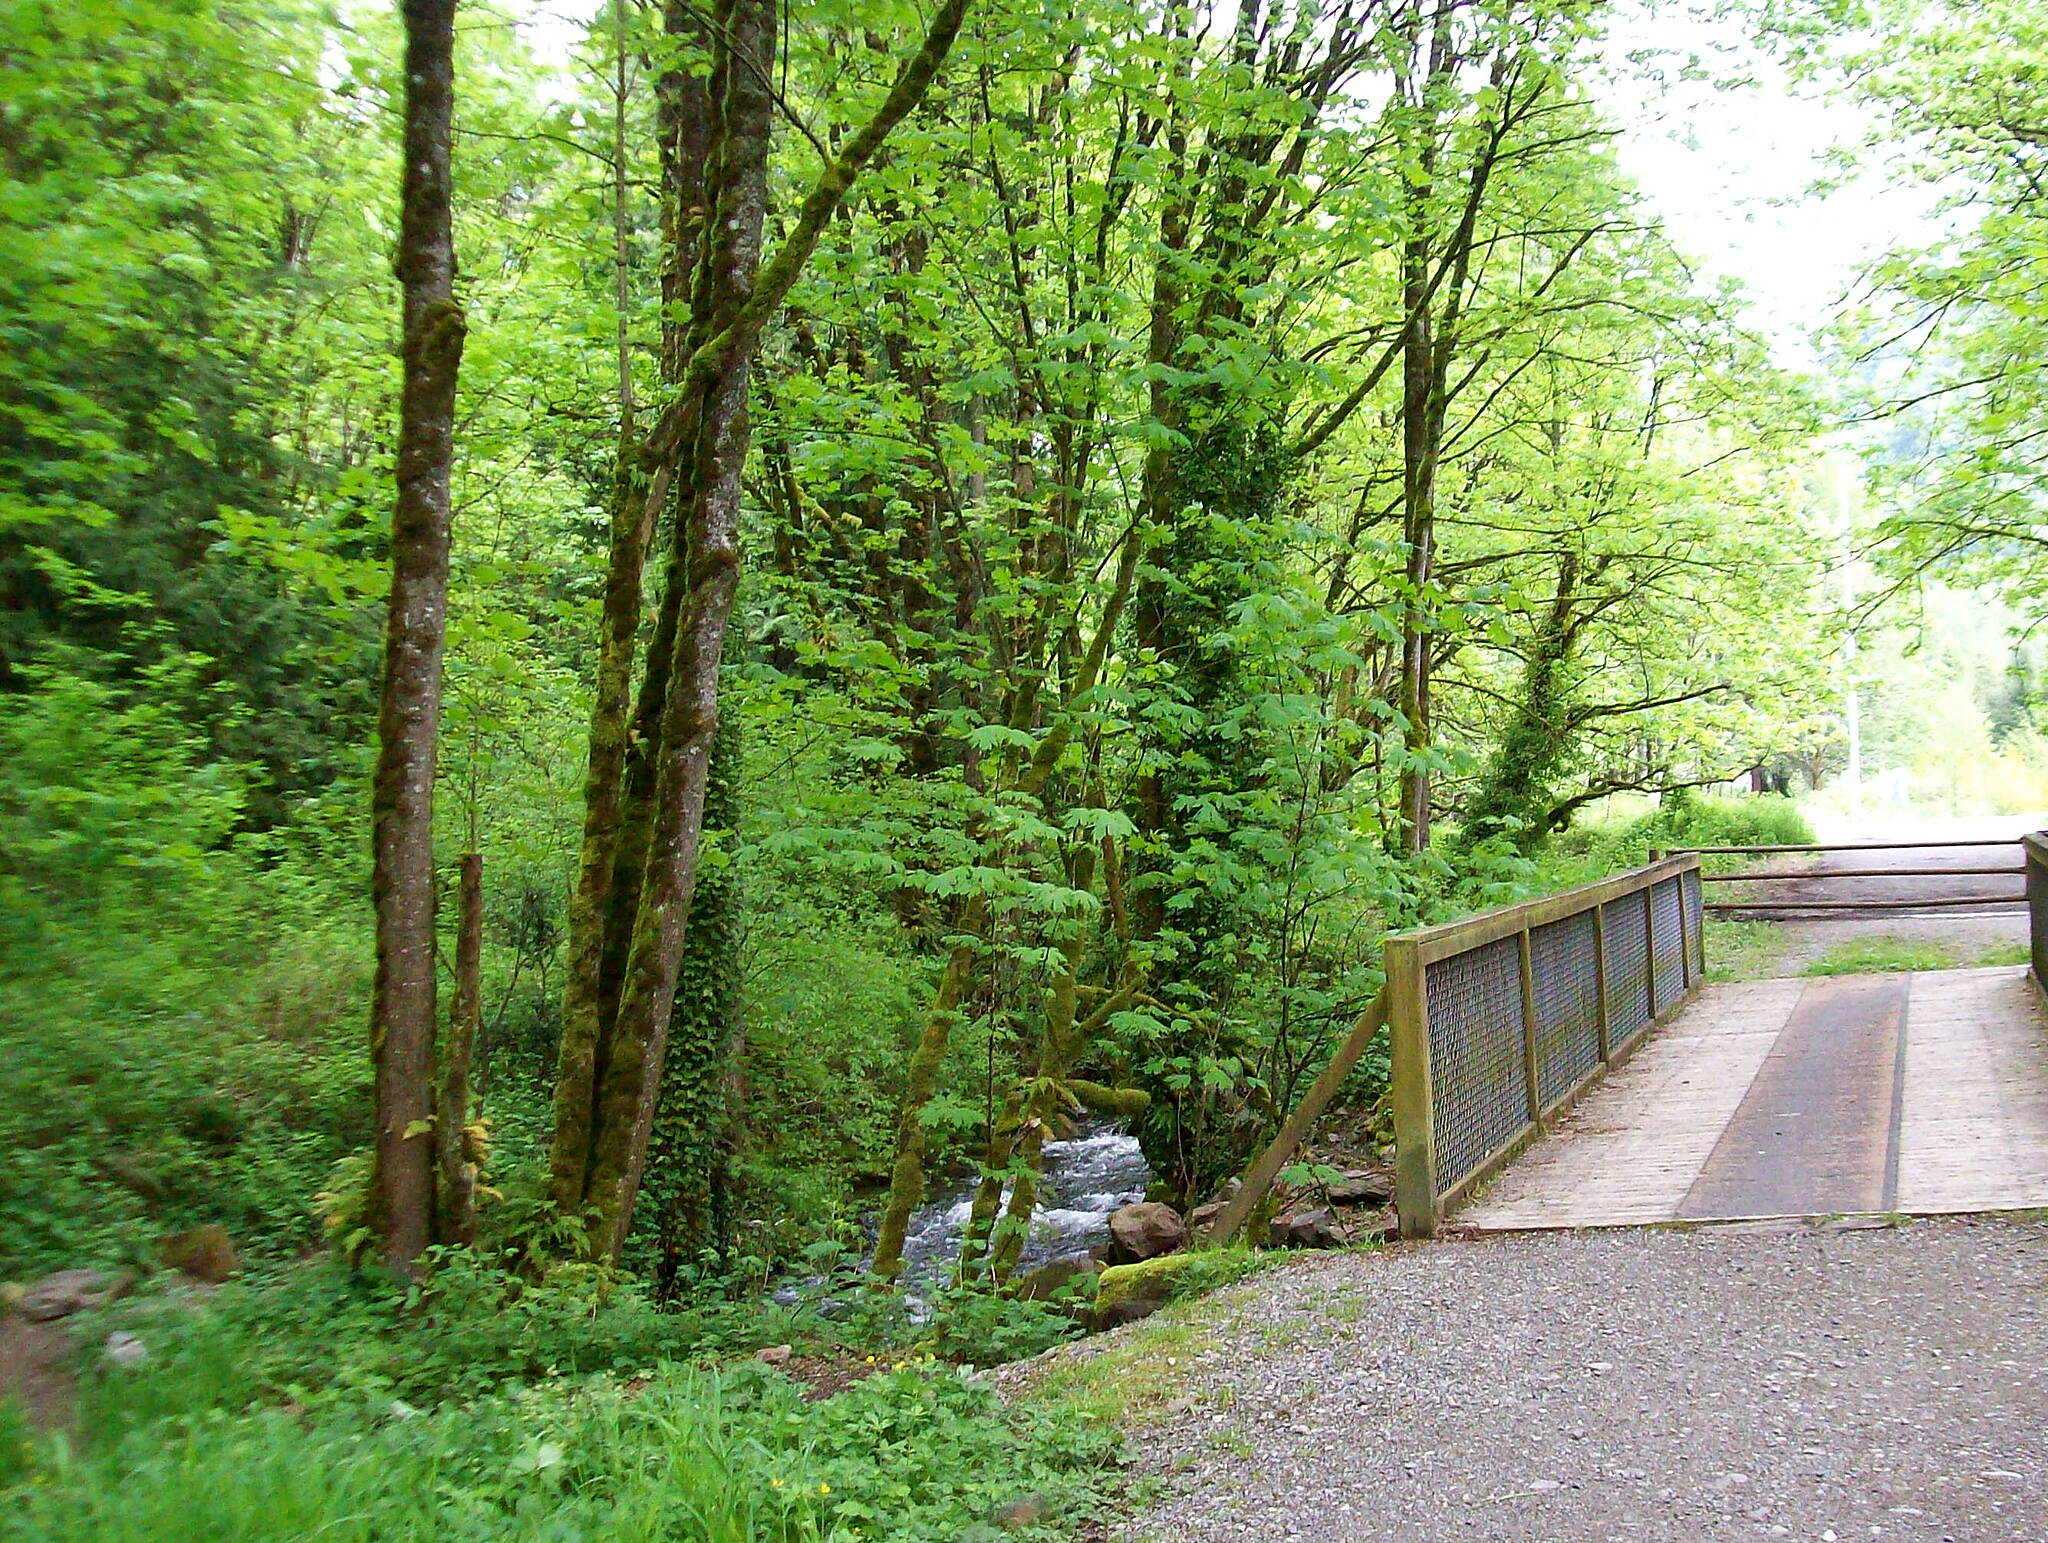 Issaquah-Preston Trail Bridge at Issaquah-Preston